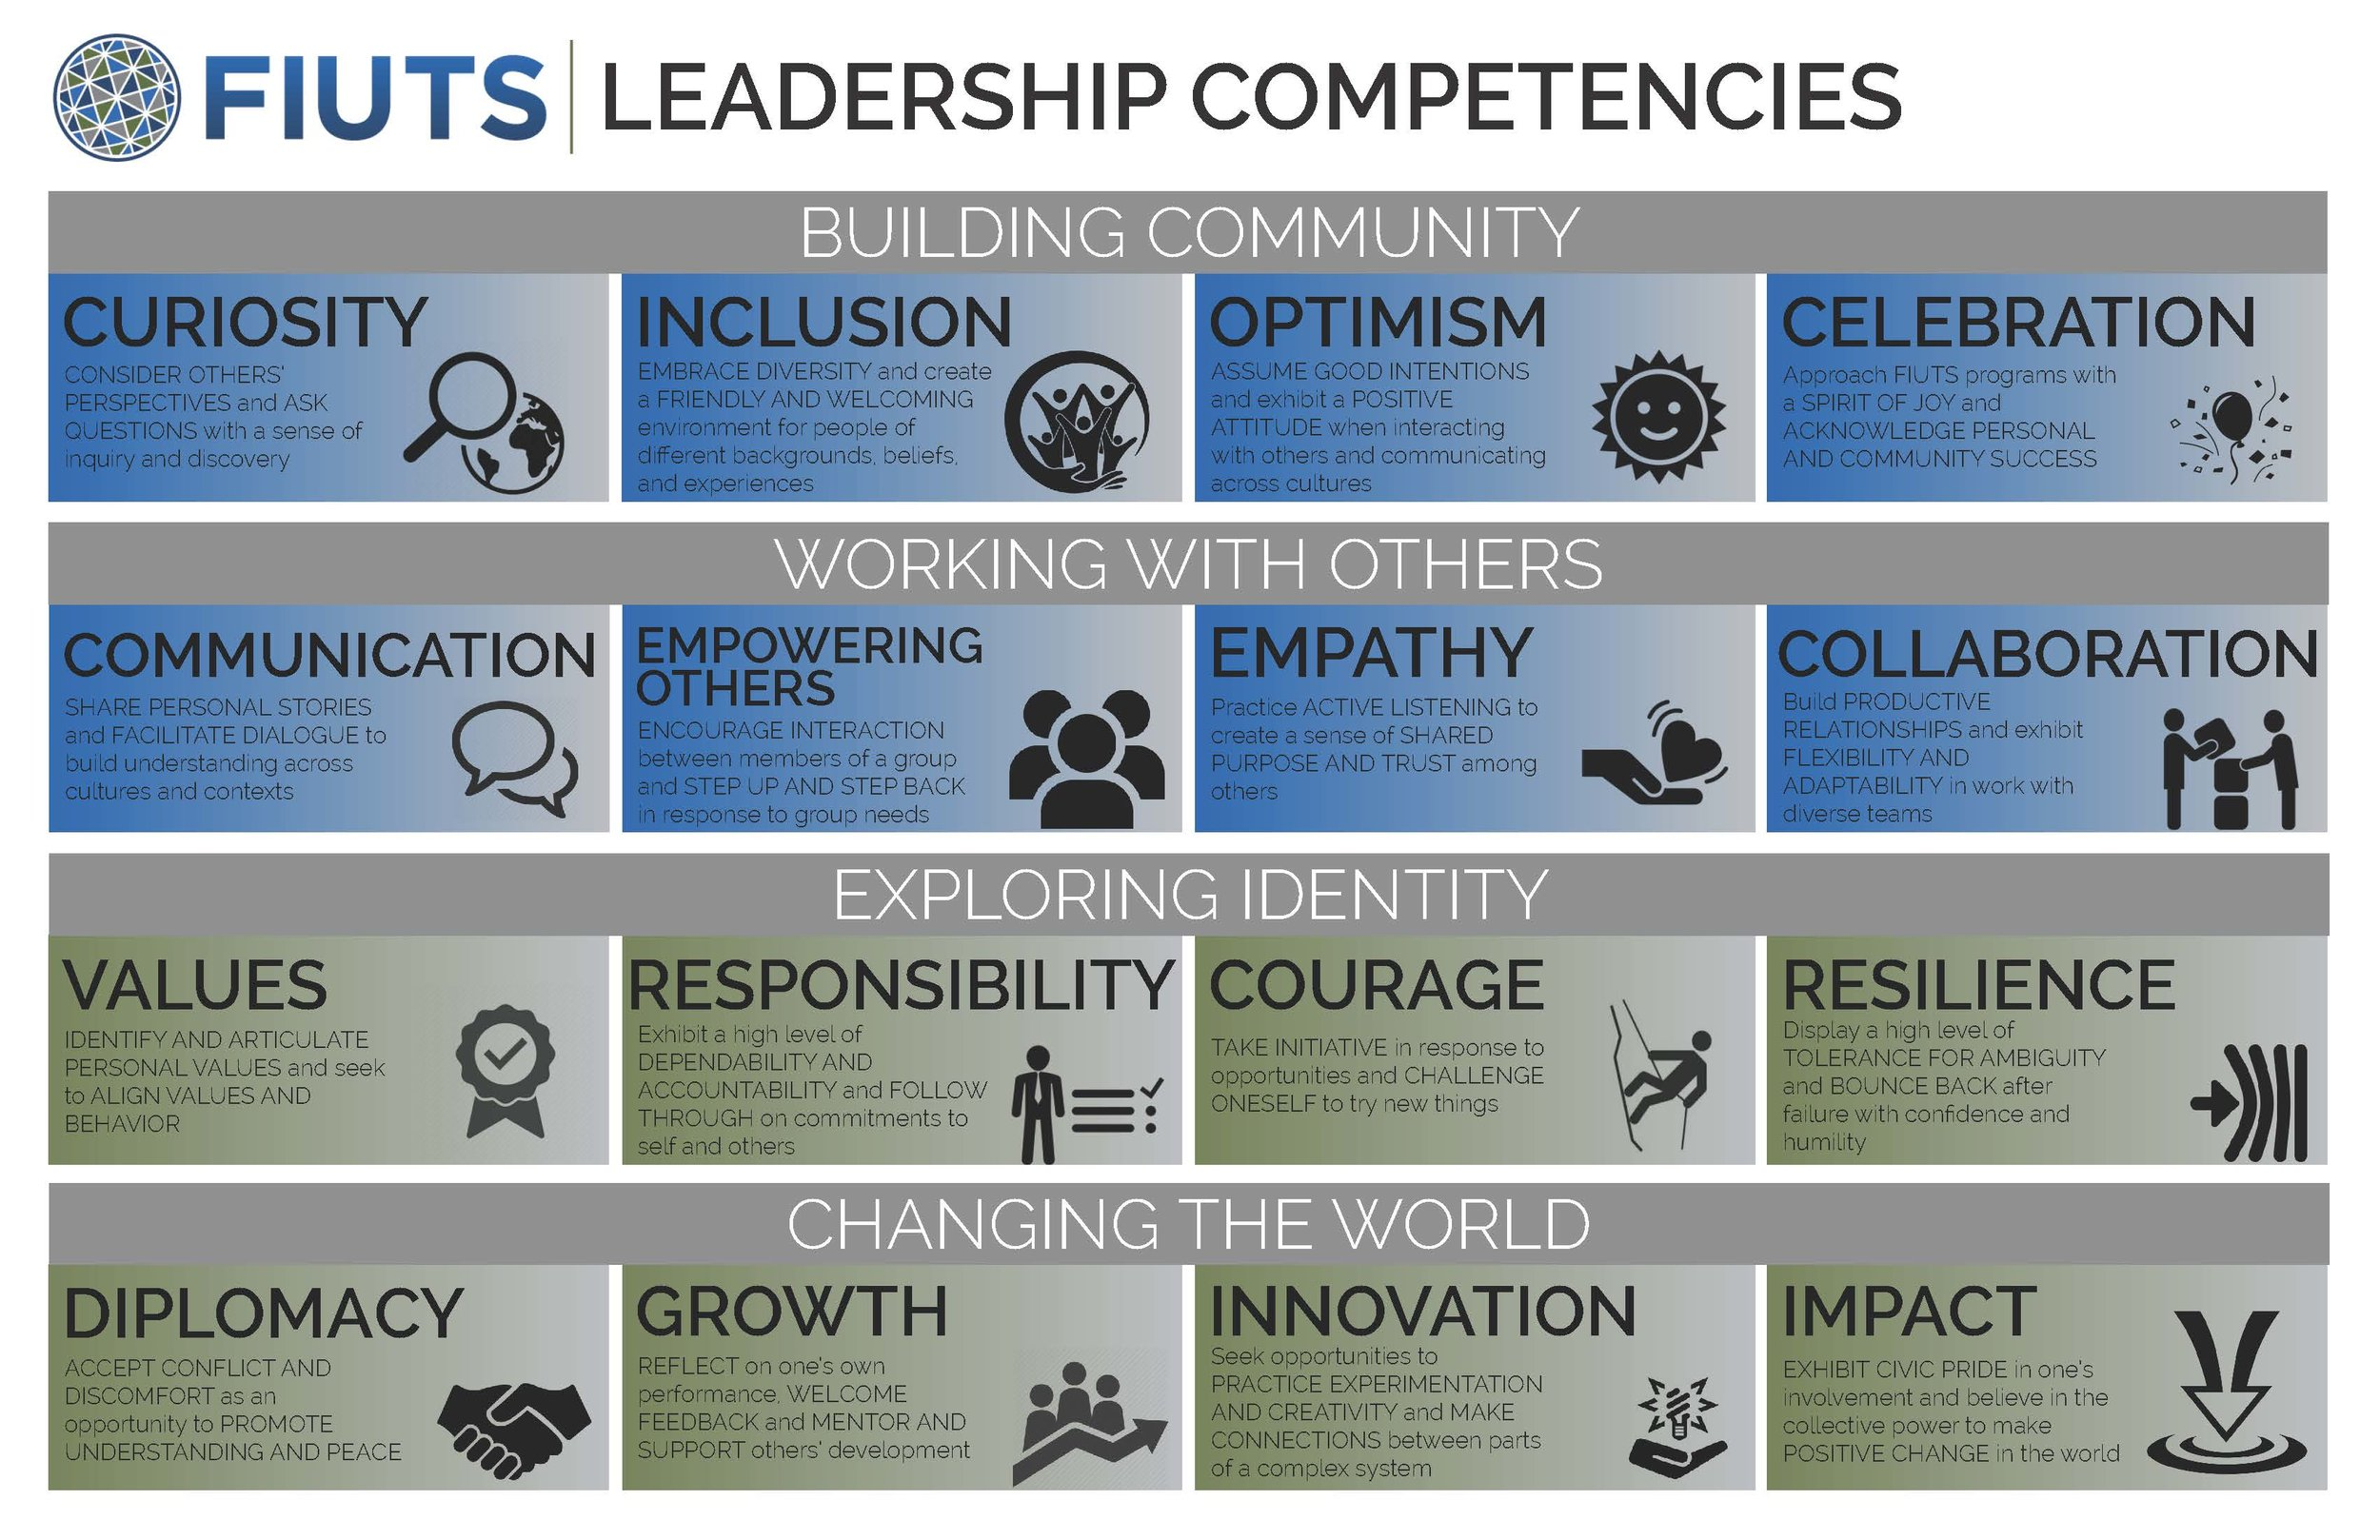 FIUTS Leadership Competencies